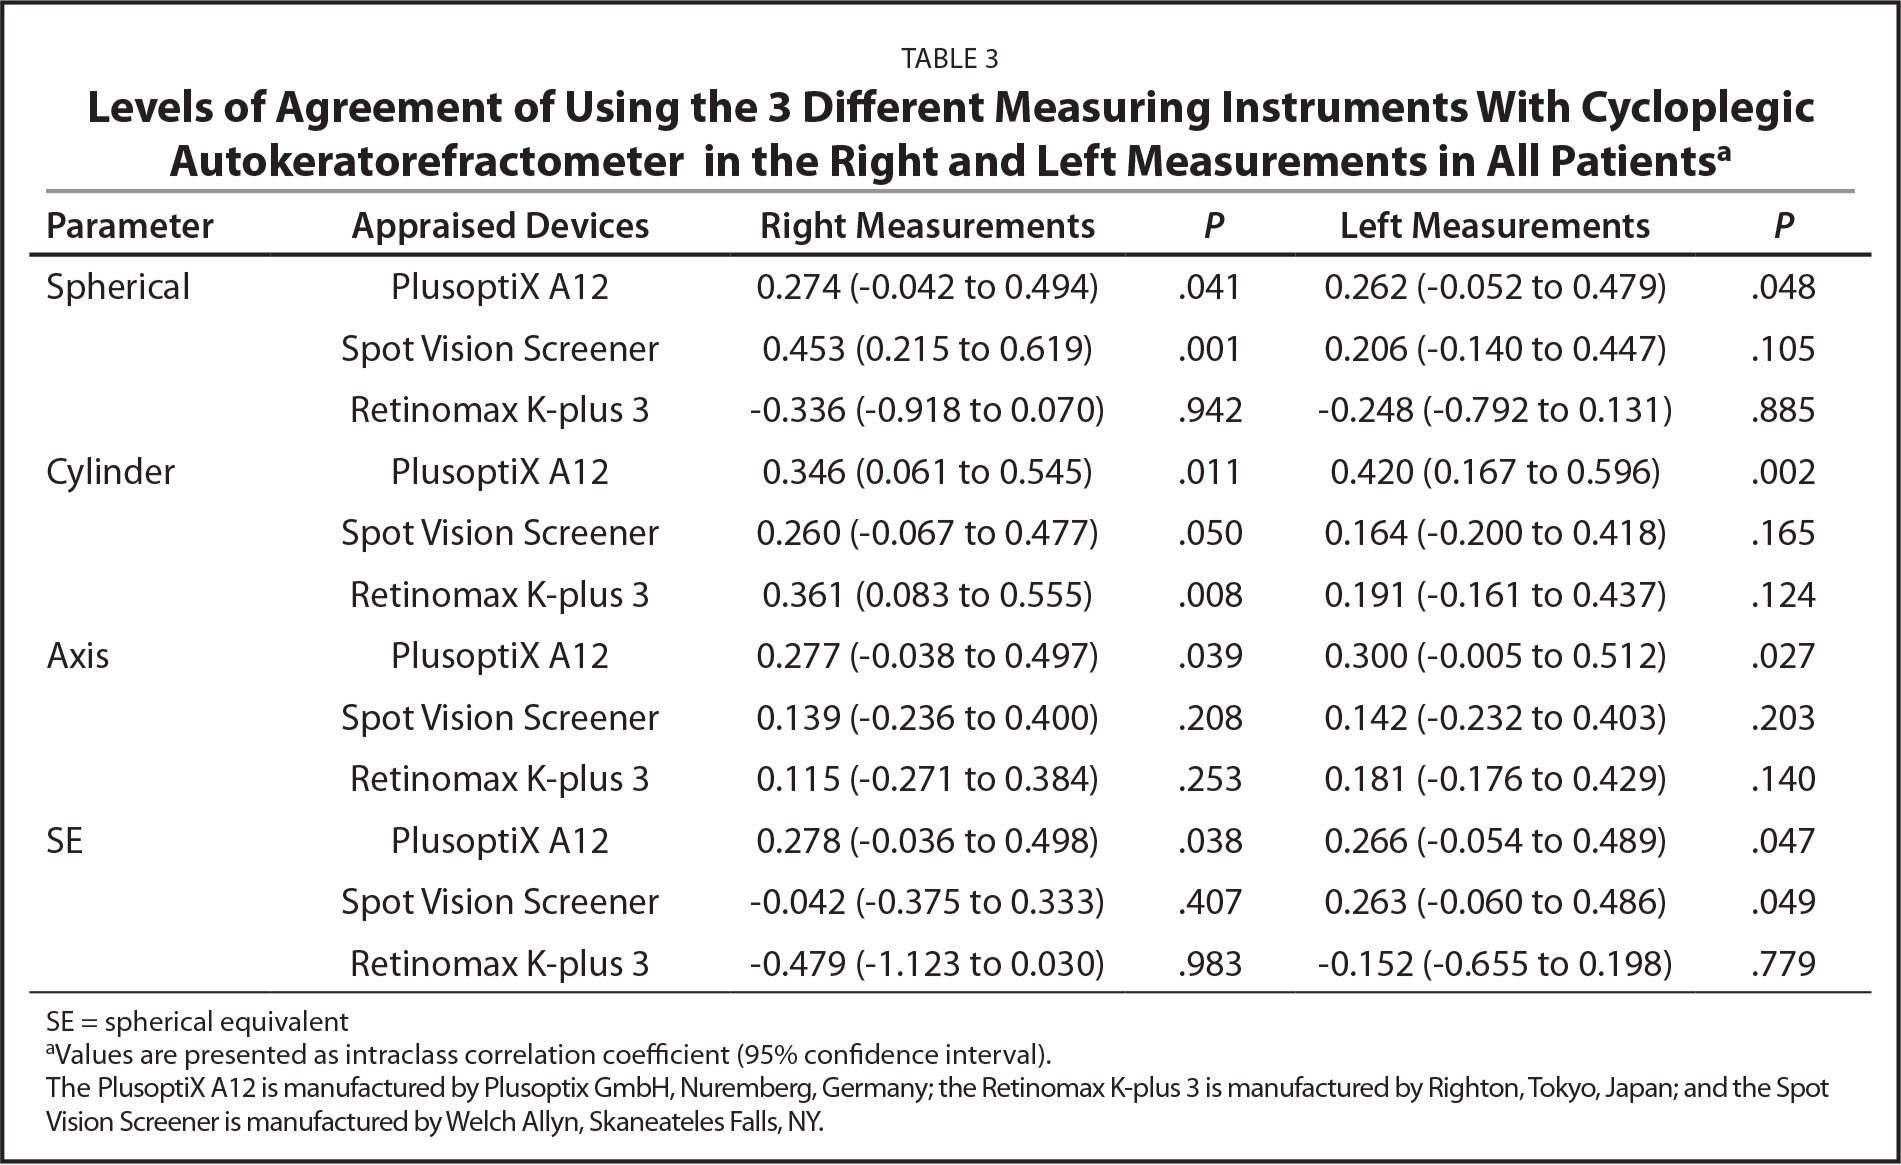 Levels of Agreement of Using the 3 Different Measuring Instruments With Cycloplegic Autokeratorefractometer in the Right and Left Measurements in All Patientsa